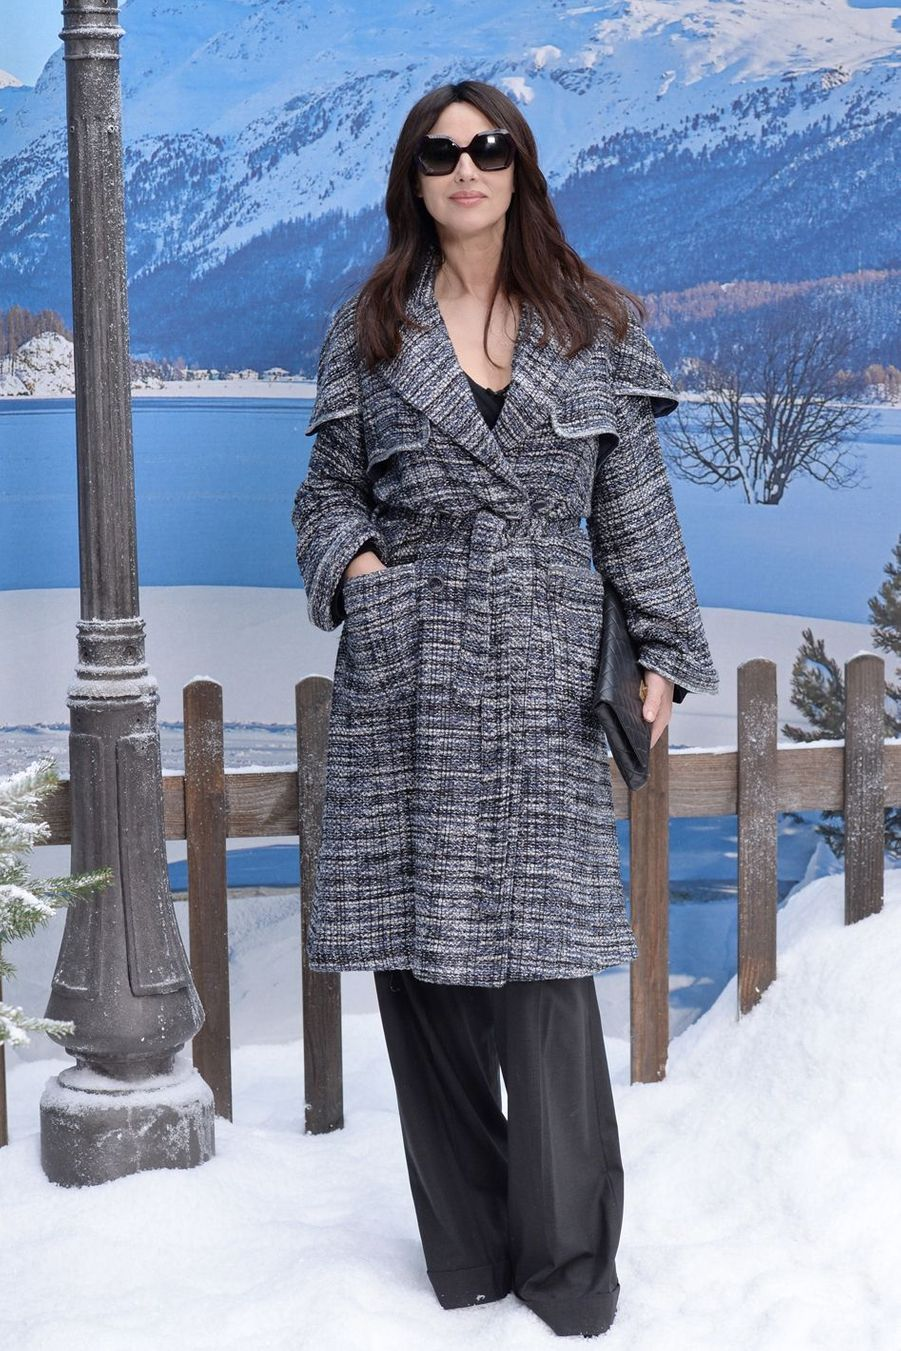 Monica Bellucci au défilé Chanel au Grand Palais à Paris le 5 mars 2019